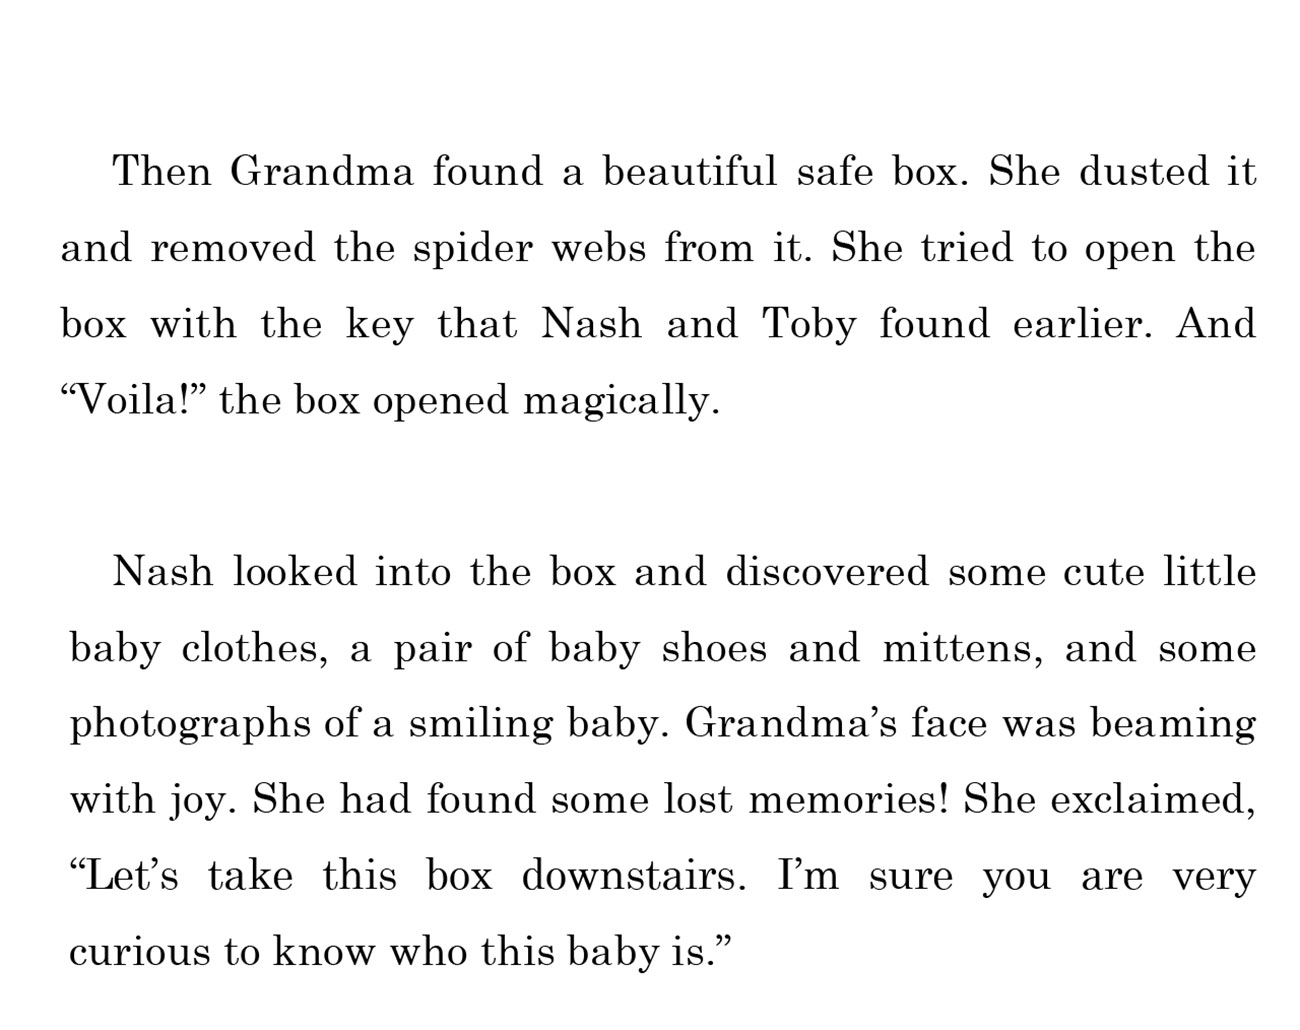 kids short story 'Down the memory lane with nash' by uma bala devarakonda - page 14